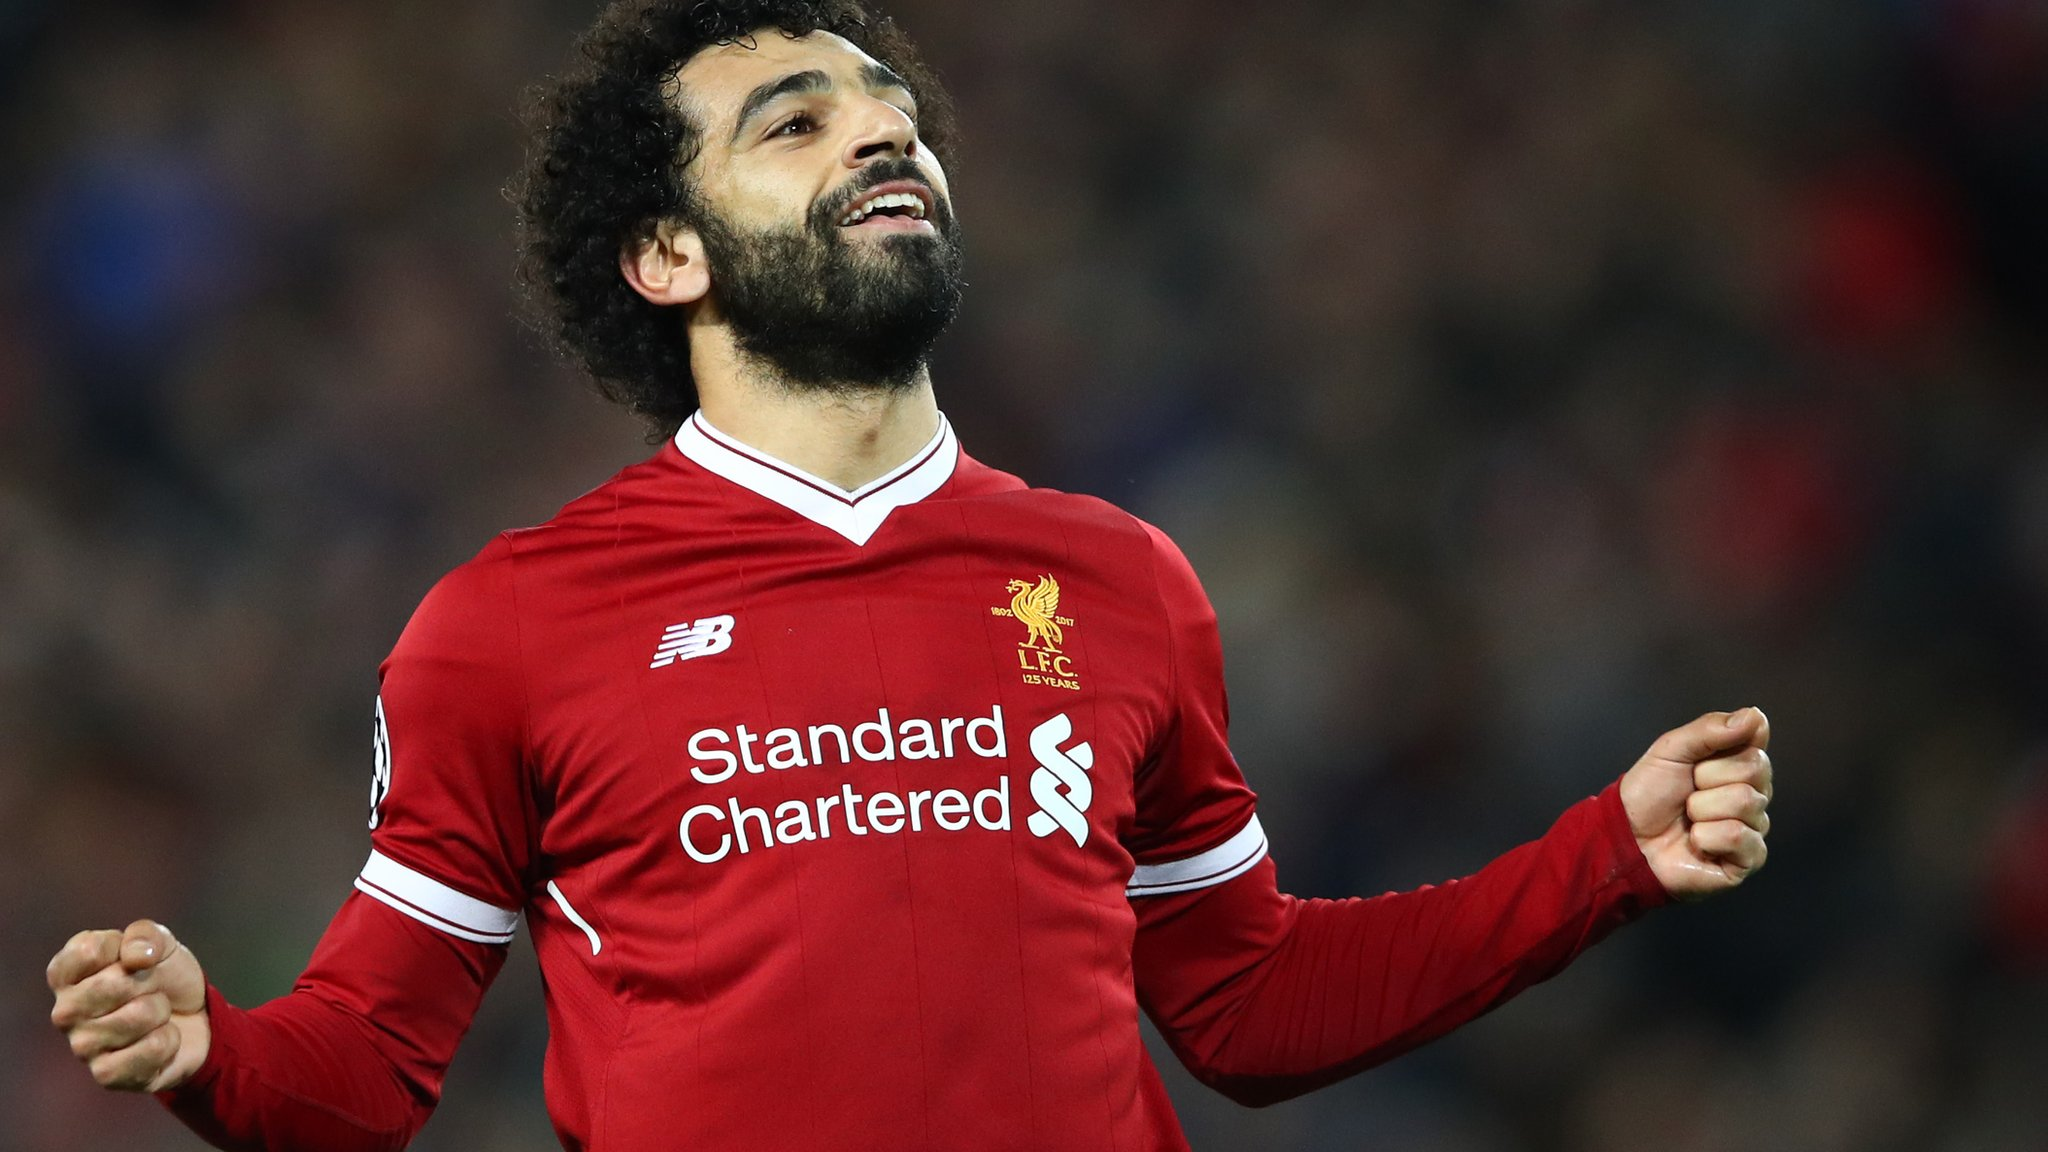 Gossip: Real convinced Liverpool will sell Salah for 100m euros